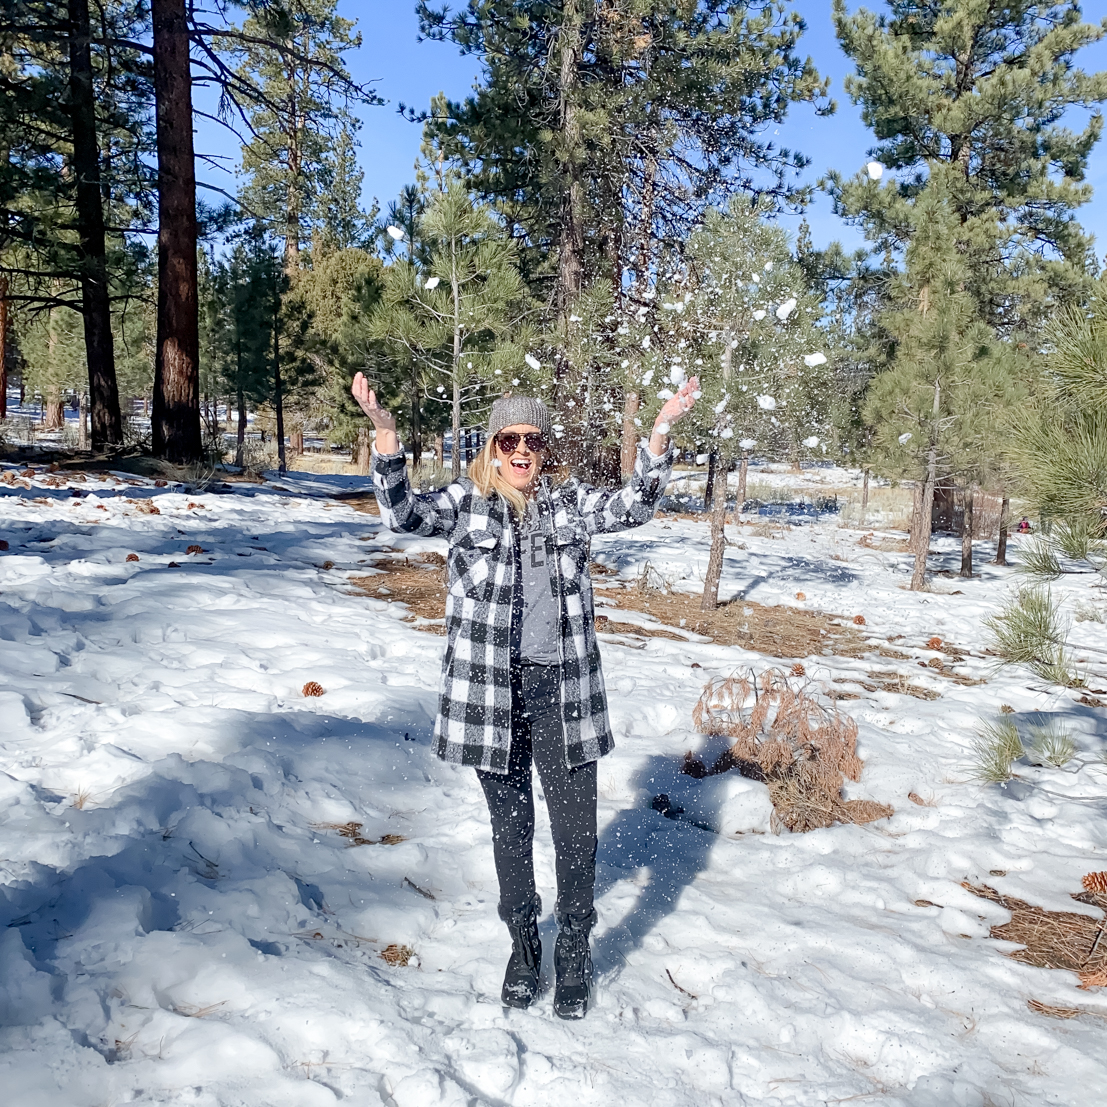 The Ultimate trip to Big Bear featured by Popular US Travel Blog, The Fashionista Momma; Woman throwing snow in plaid jacket